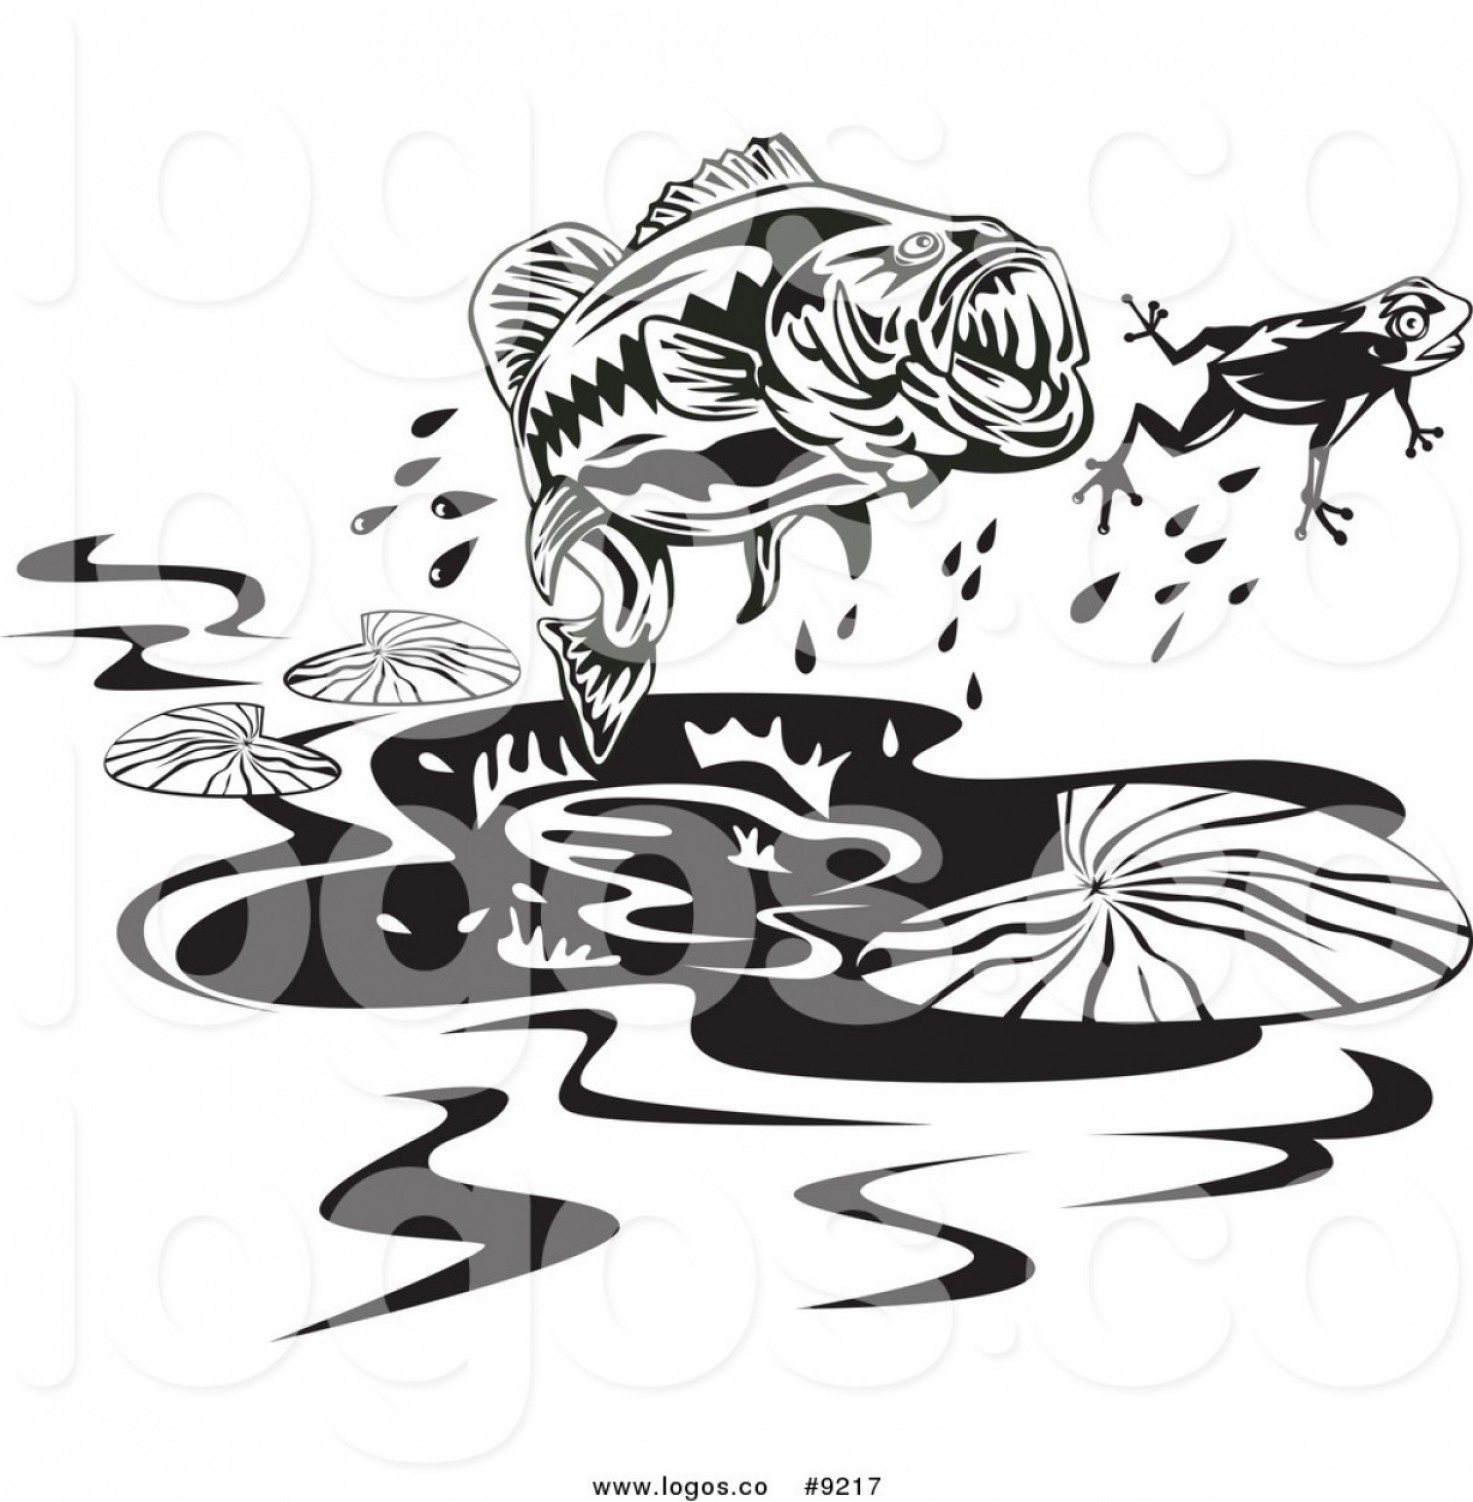 Largemouth Bass Silhouette Vector: Royalty Free Clip Art Vector Angling Logo Of A Black And White Largemouth Bass Fish Chasing A Frog By Patrimonio